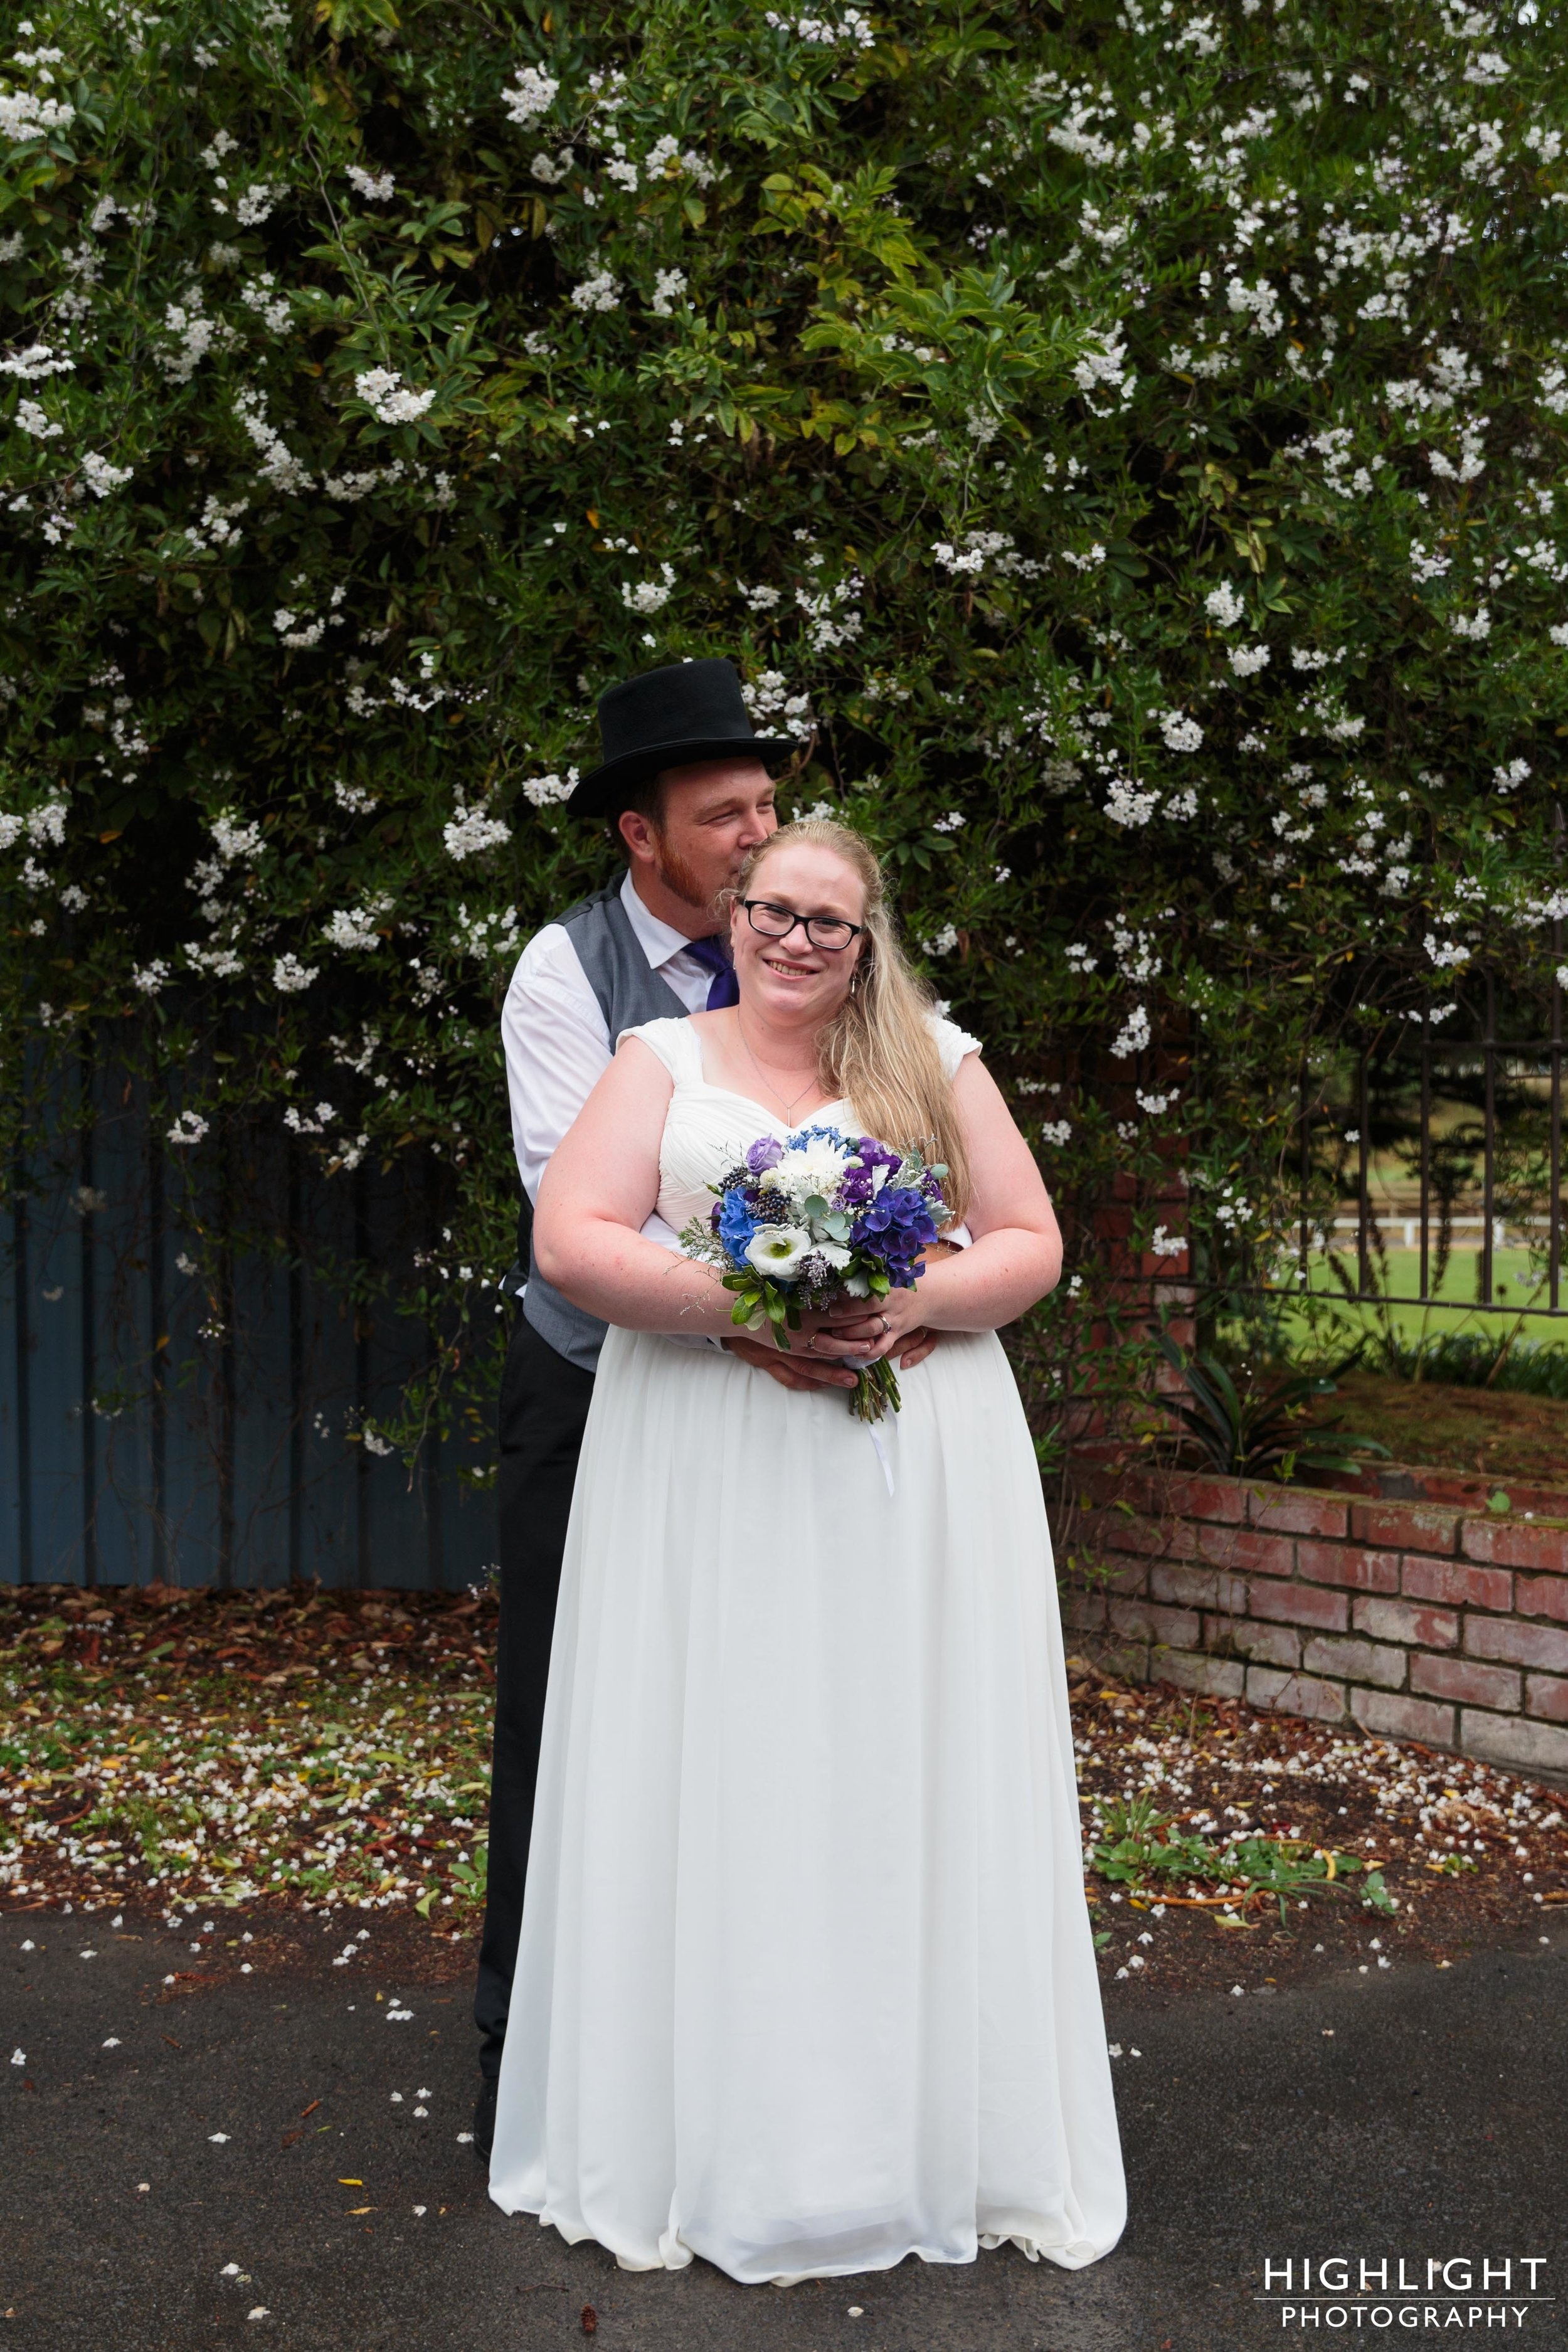 highlight-wedding-photography-new-zealand-palmerston-north-127.jpg